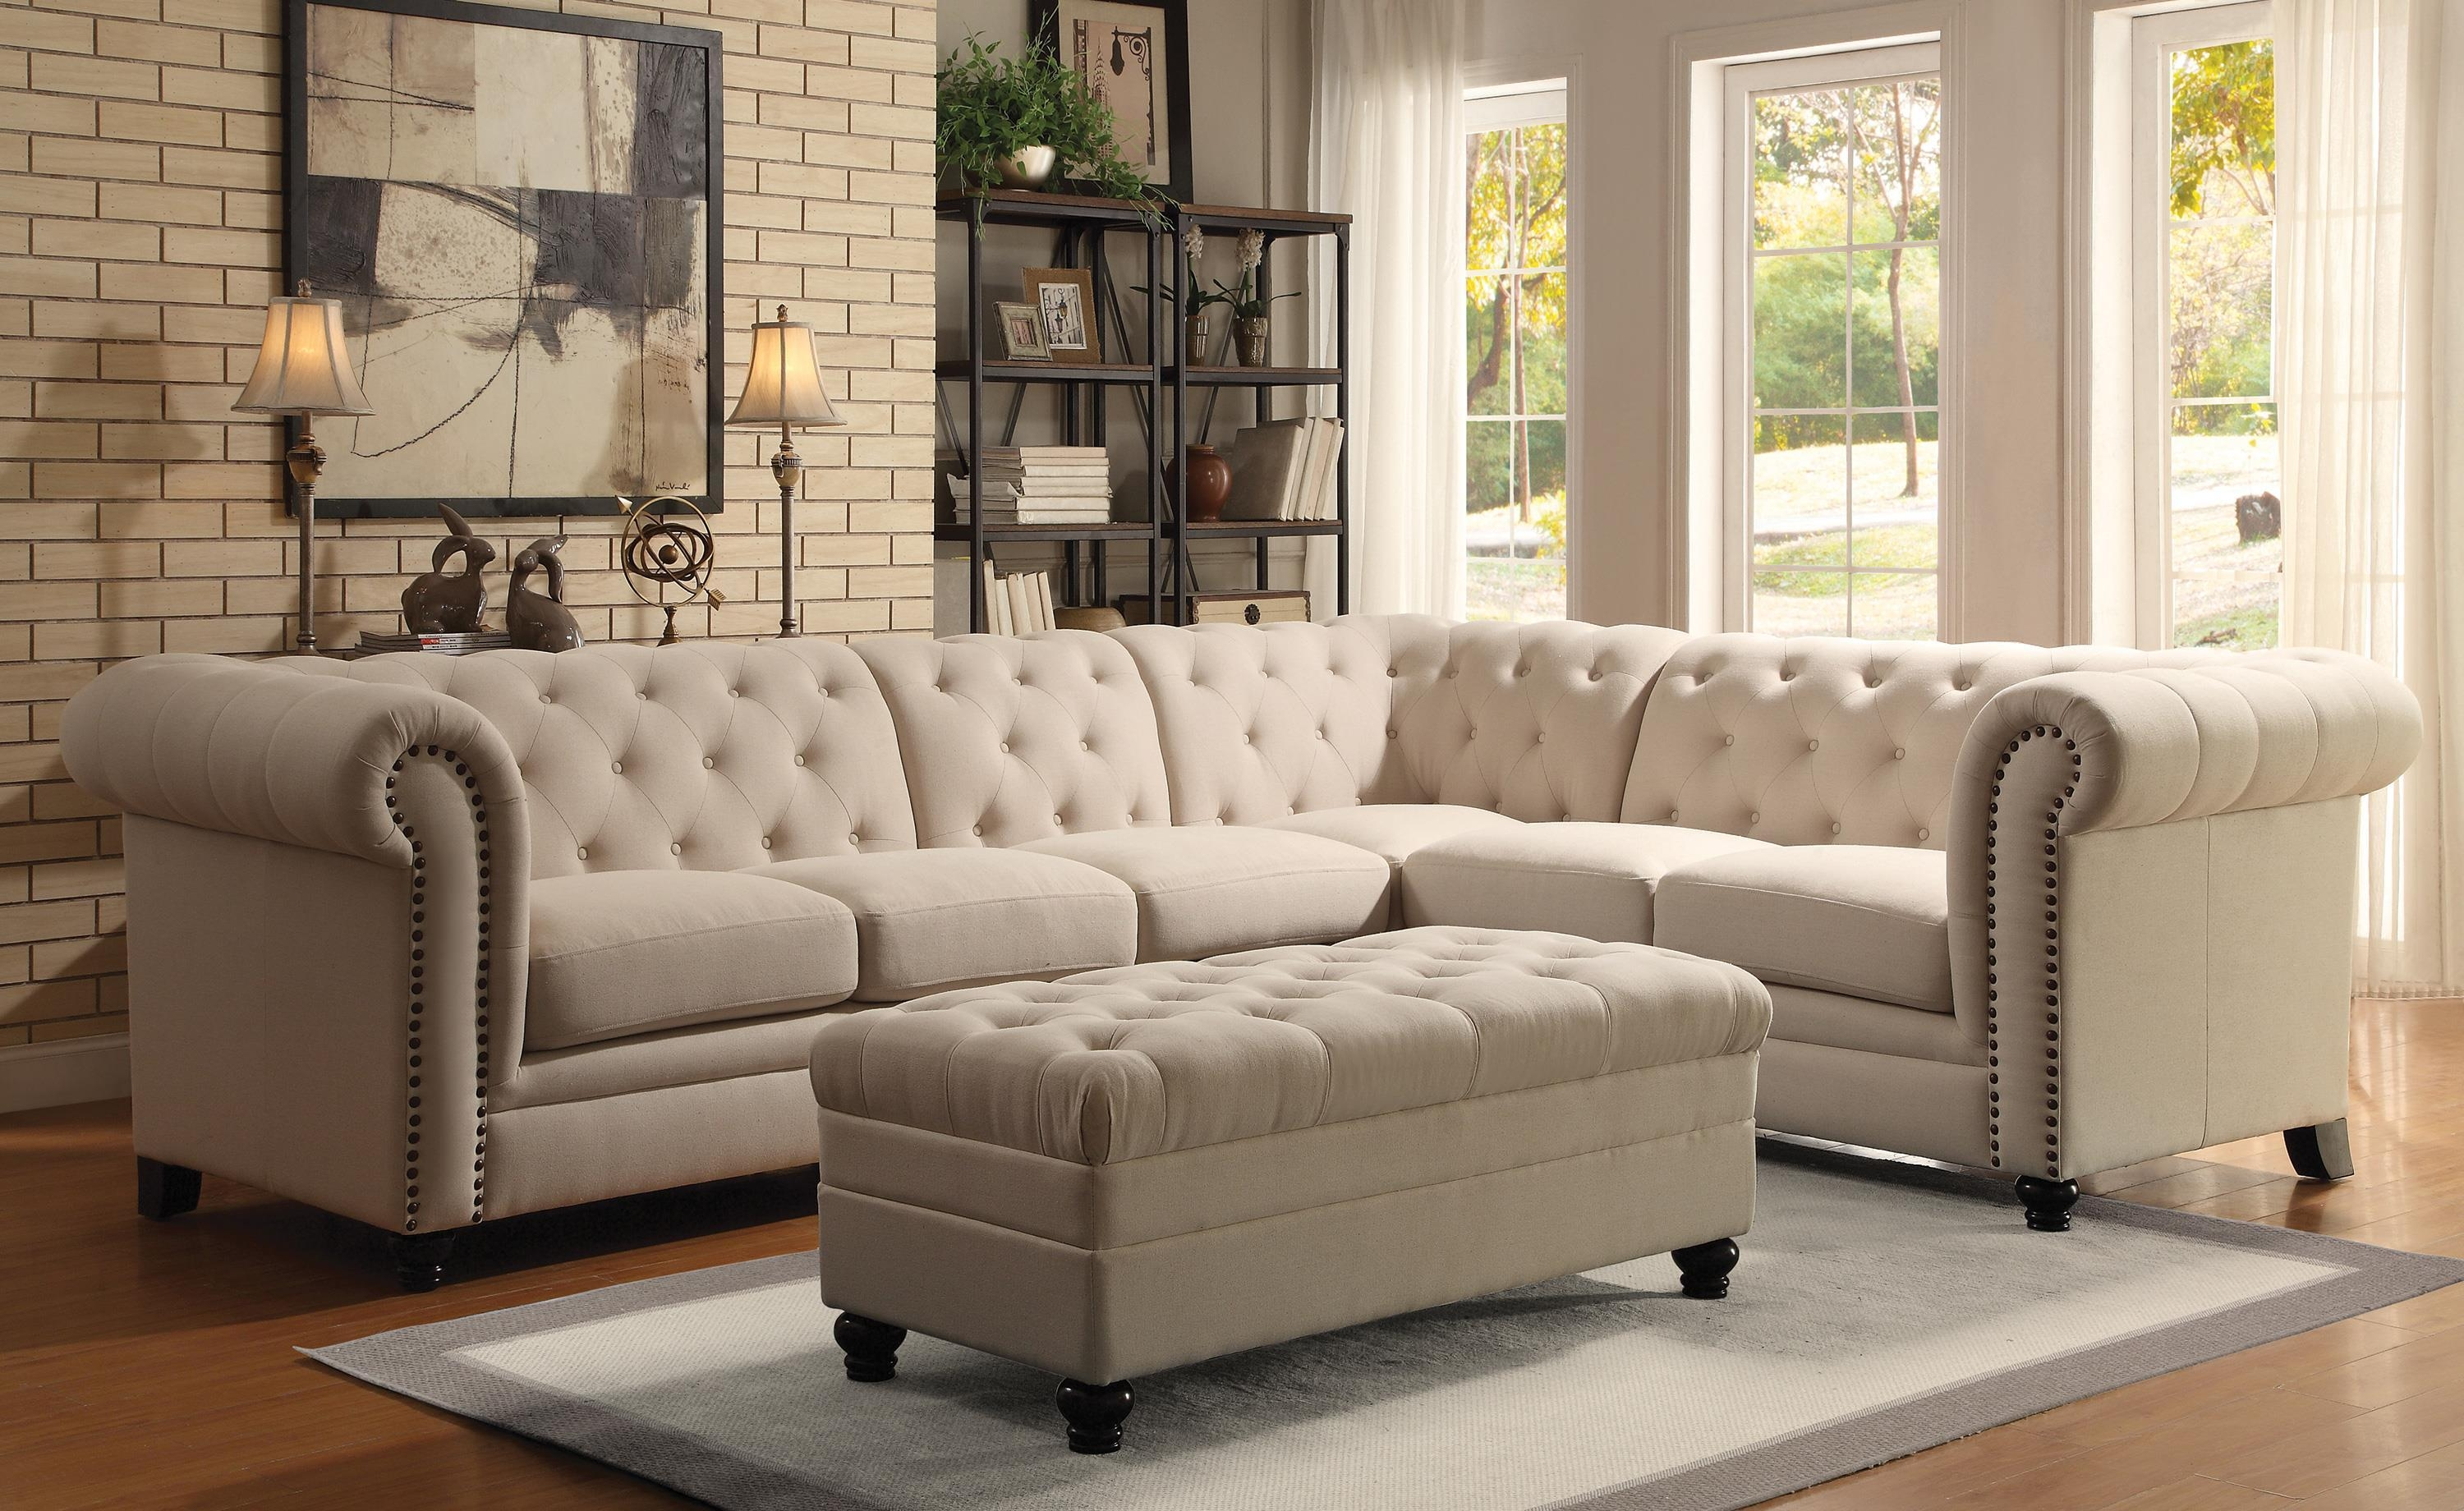 Sofa: Tufted Sectional Sofa With Chaise Throughout Tufted Sectional Sofa With Chaise (Image 14 of 20)